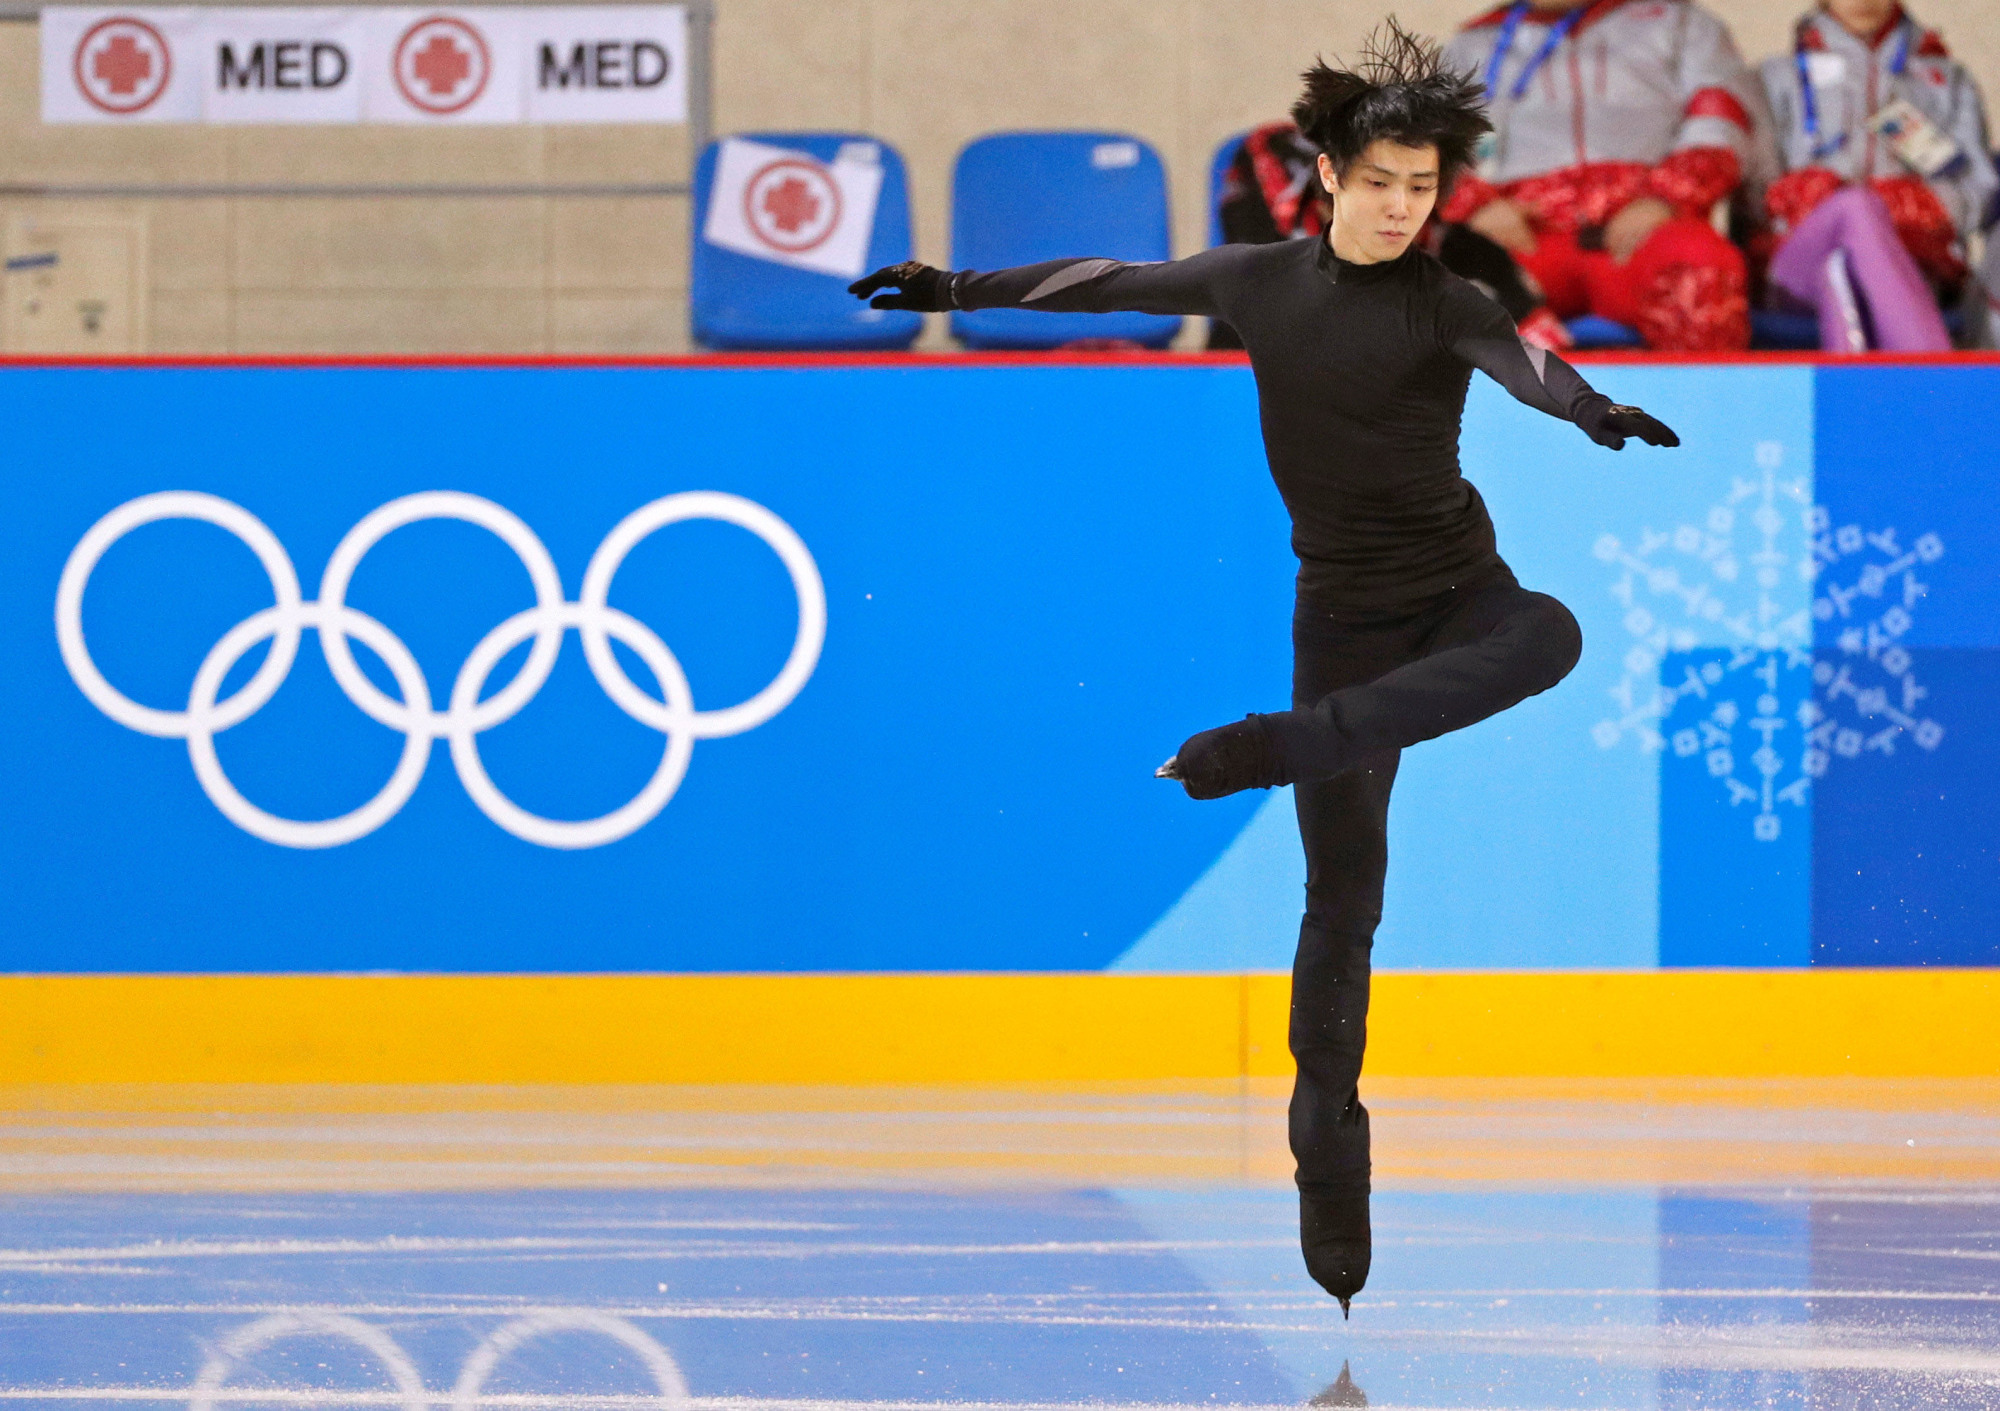 Reigning champion Yuzuru Hanyu practices for the Olympic men's figure skating competition at Gangneung Ice Arena on Monday. The competition is scheduled to begin Friday. | REUTERS